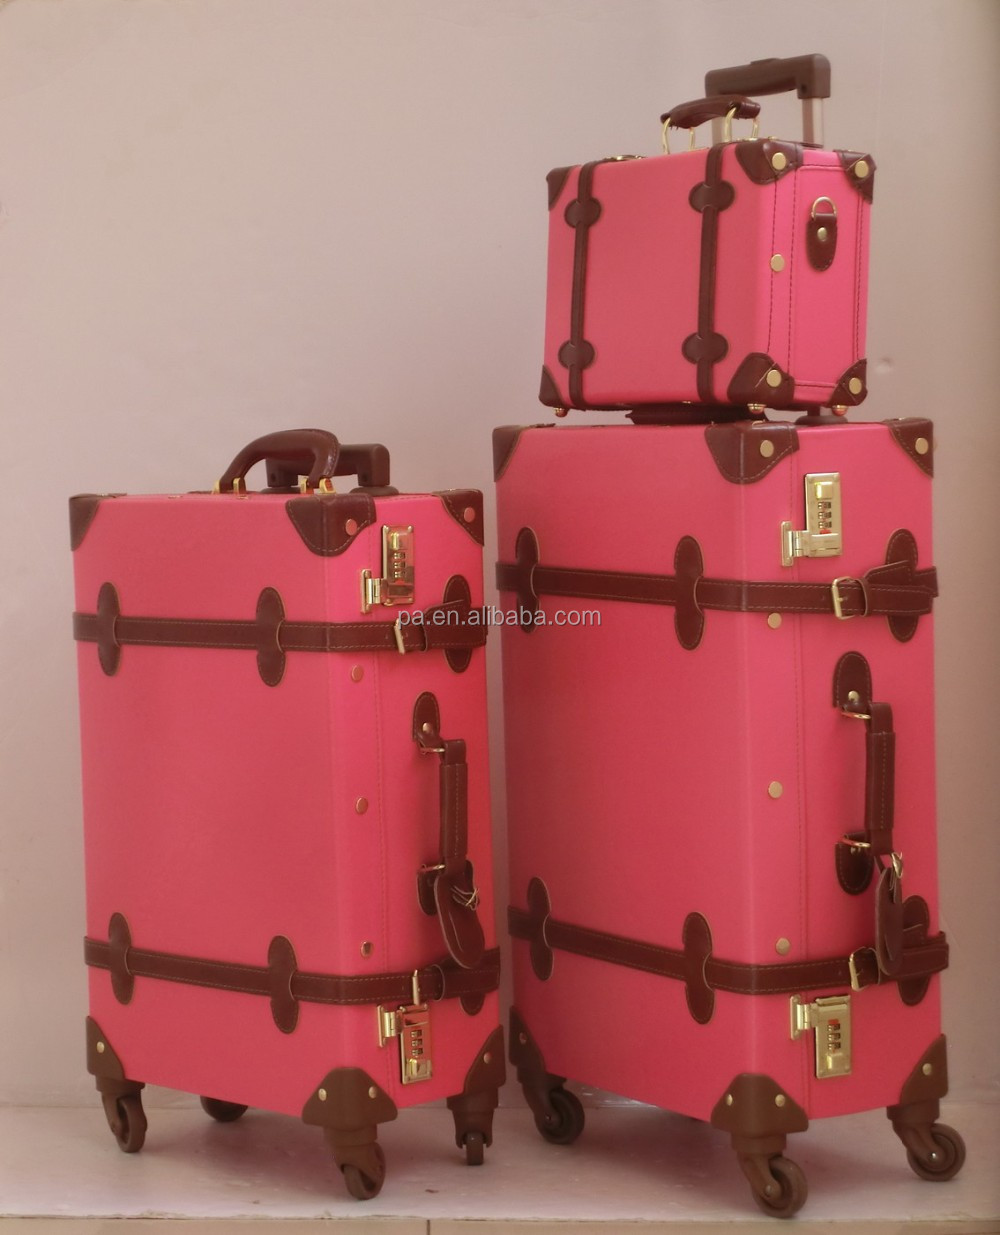 Pink Vintage Suitcase Old Looking With Spiner Wheels - Buy Vintage ...